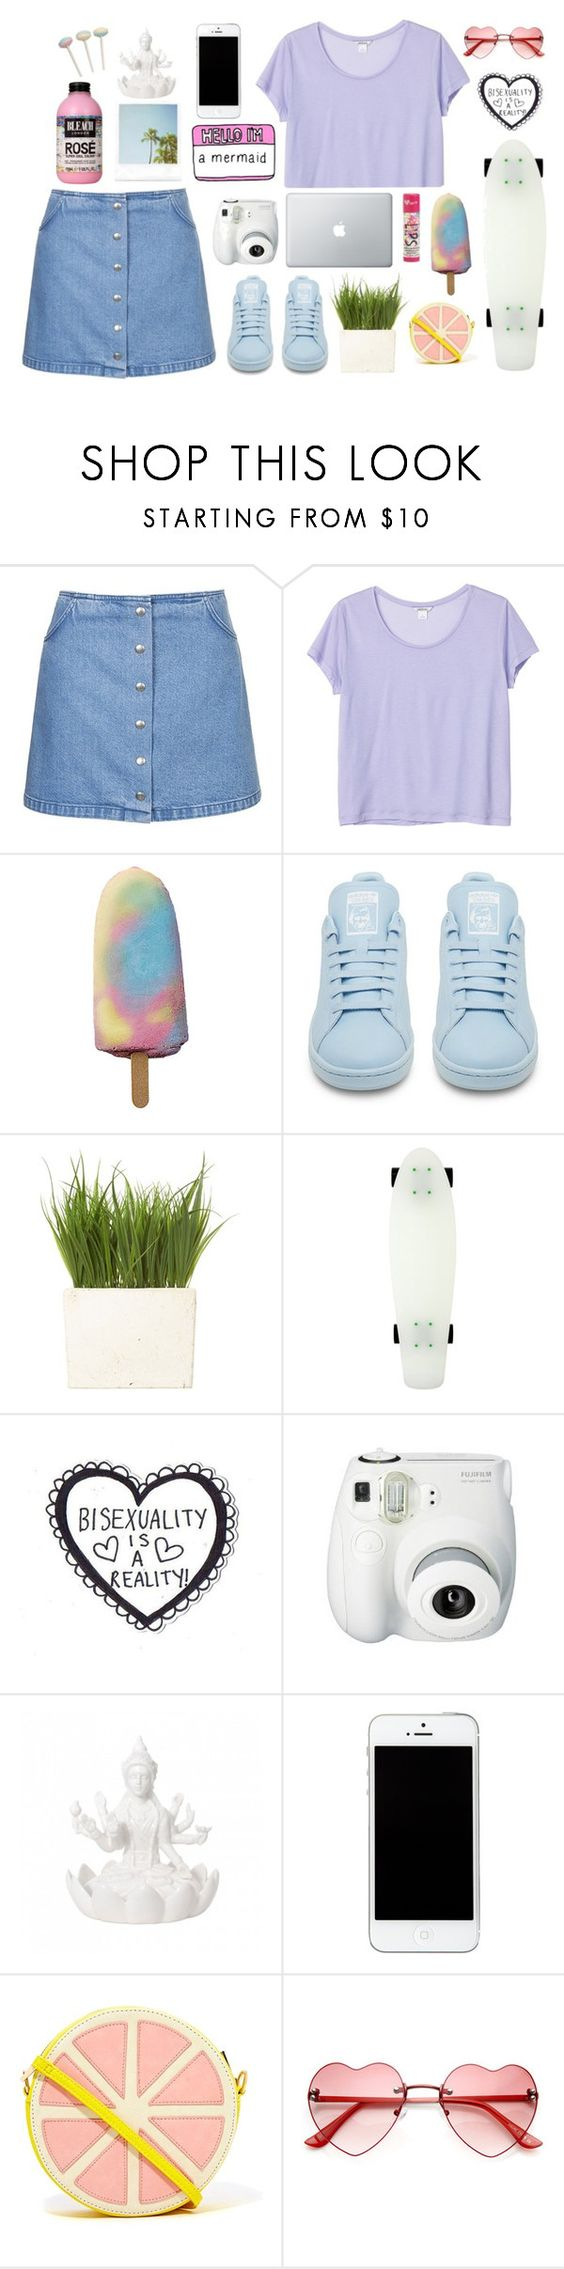 """820"" by rttt5zzrrtrrrttttrtttisilovesyou ❤ liked on Polyvore featuring Topshop, Monki, adidas, Linea, Roxy, Imm Living, Nila Anthony, Aéropostale, women's clothing and women's fashion"